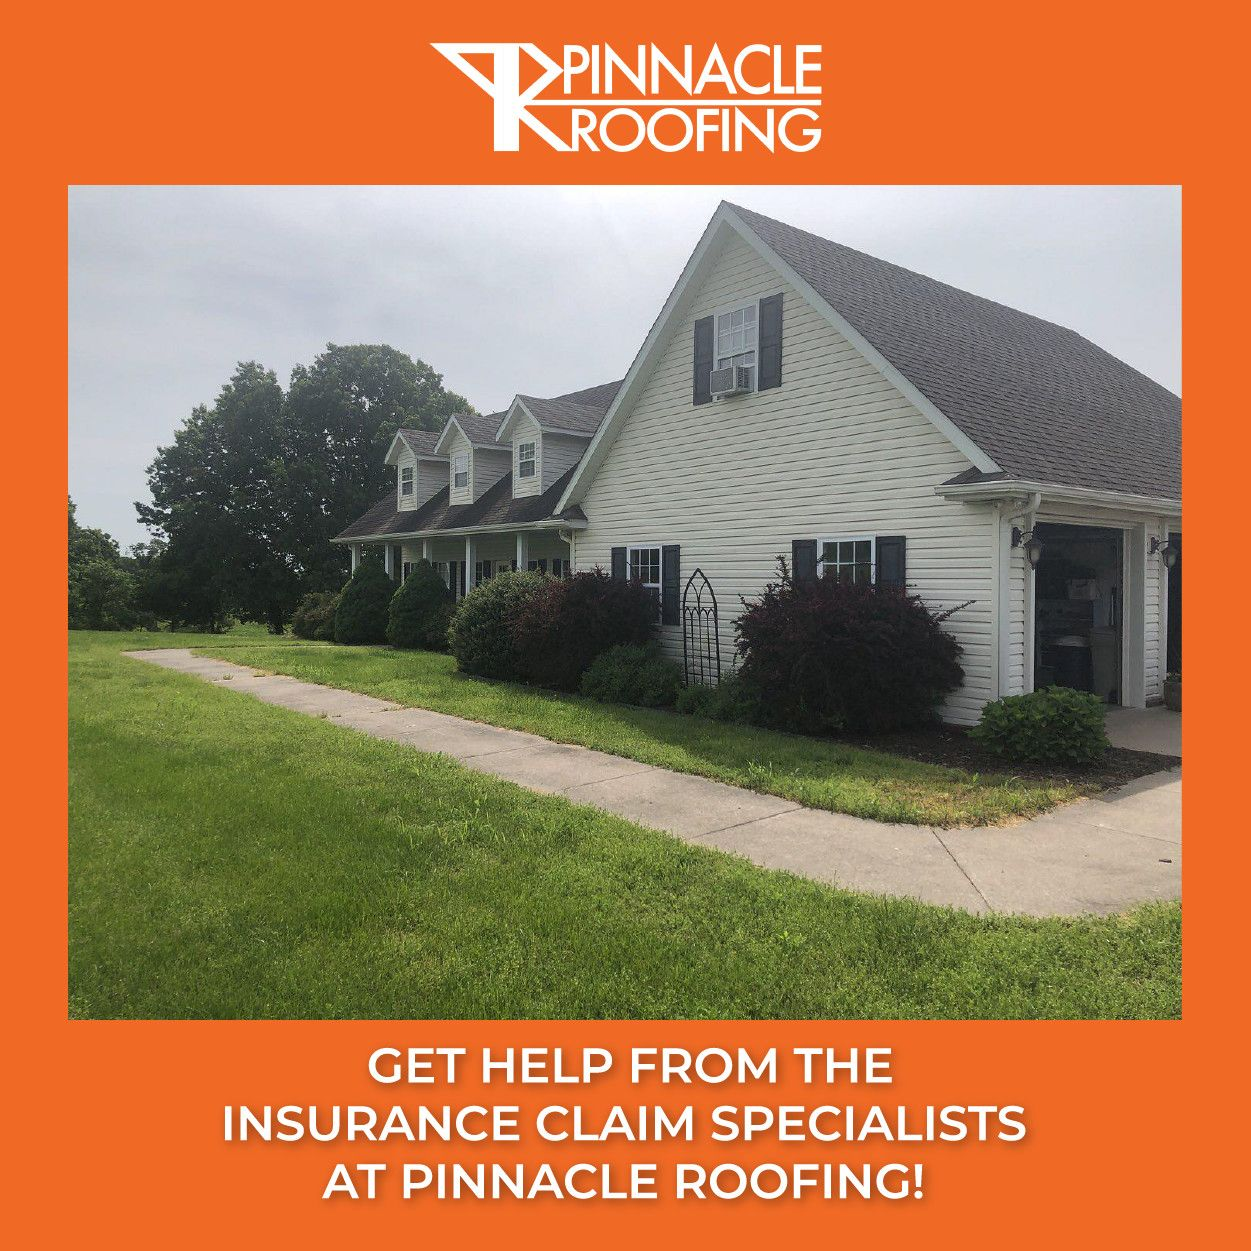 Insurance claims can be a mess call one of our